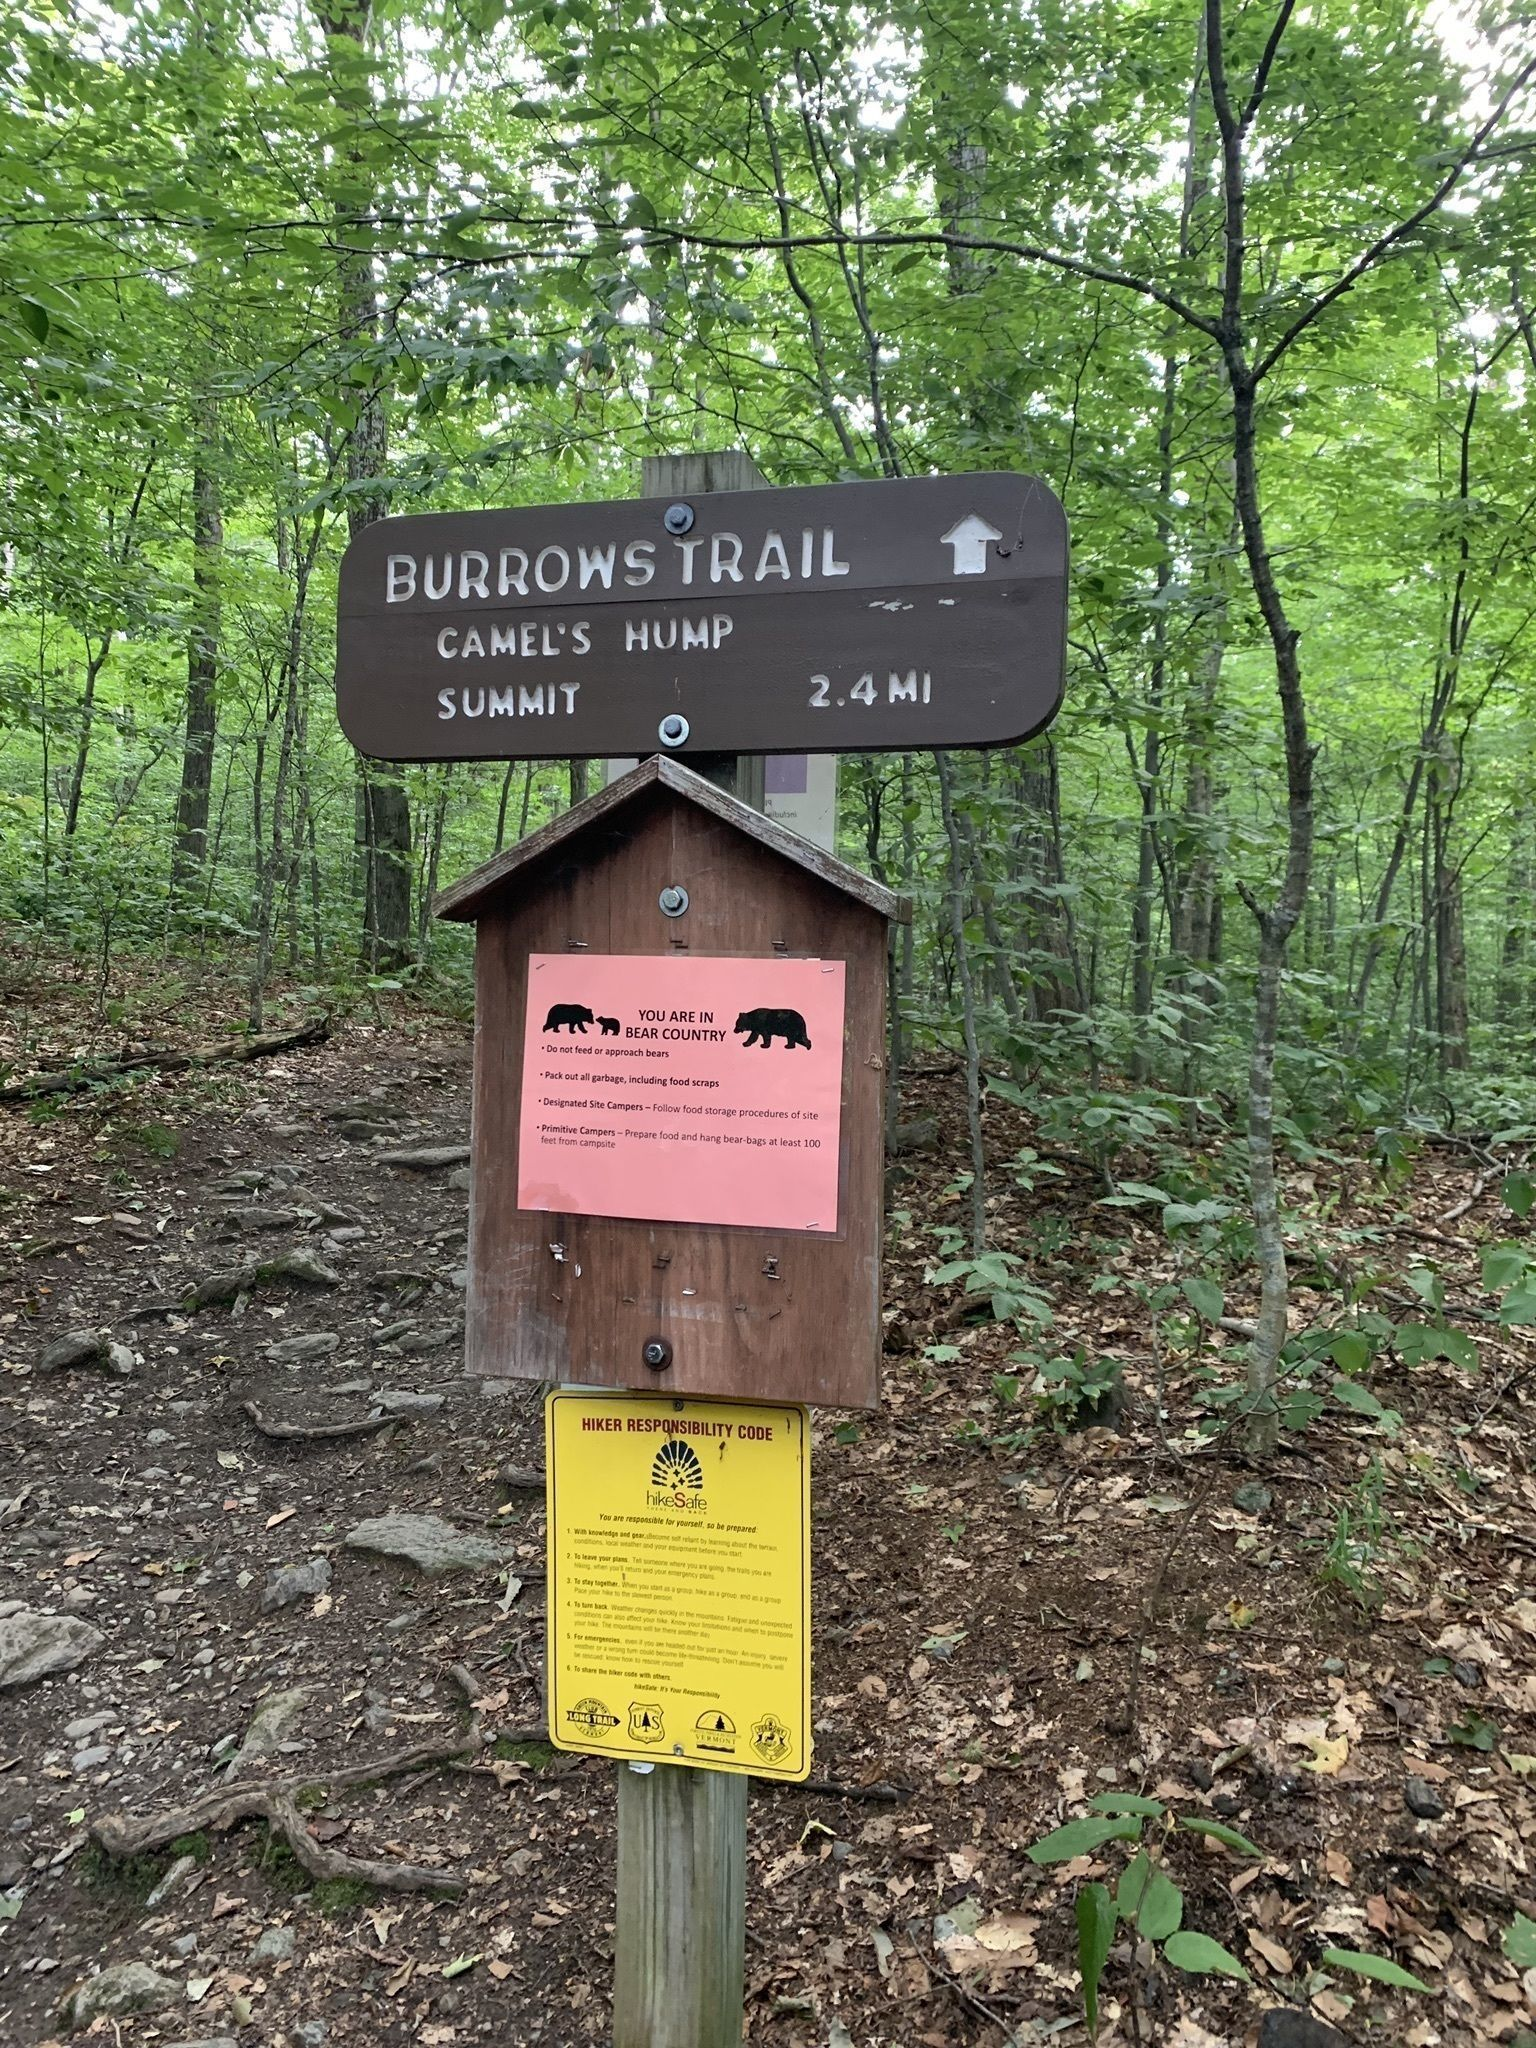 Best Trails in Camels Hump State Park - Vermont | AllTrails